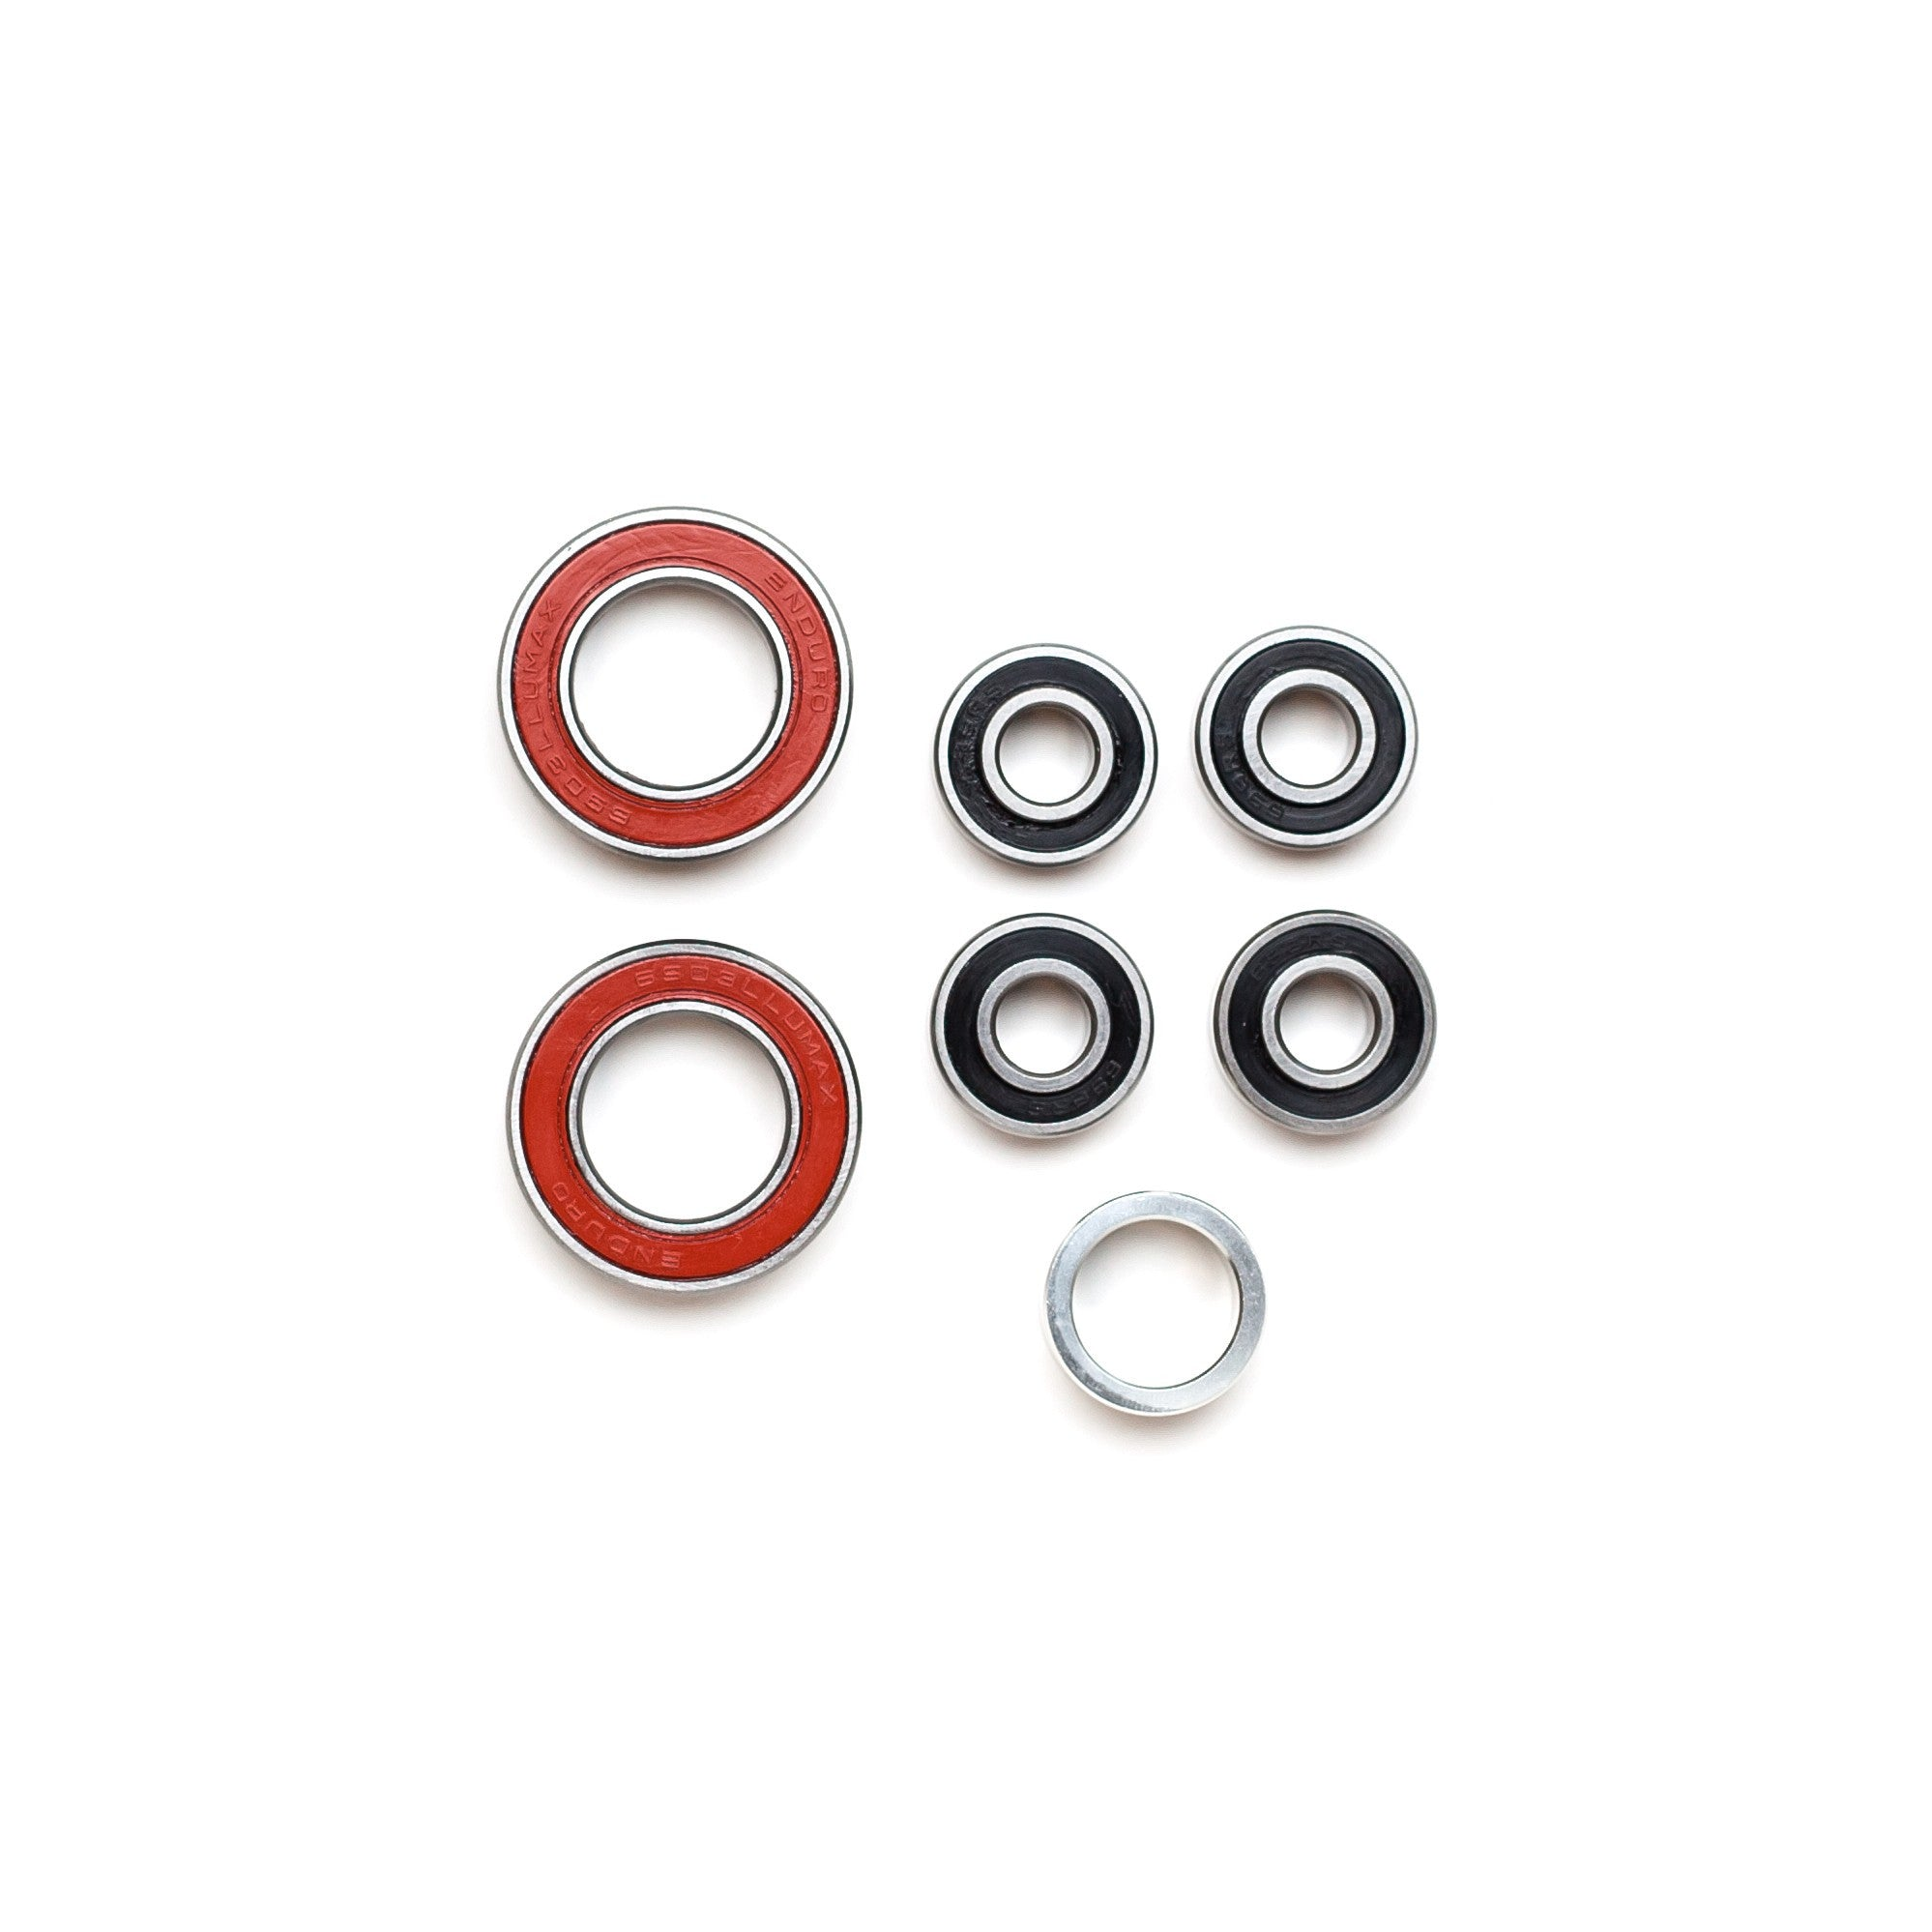 Yeti Parts - ASR 08-09 Bearing Rebuild Kit (Alloy)